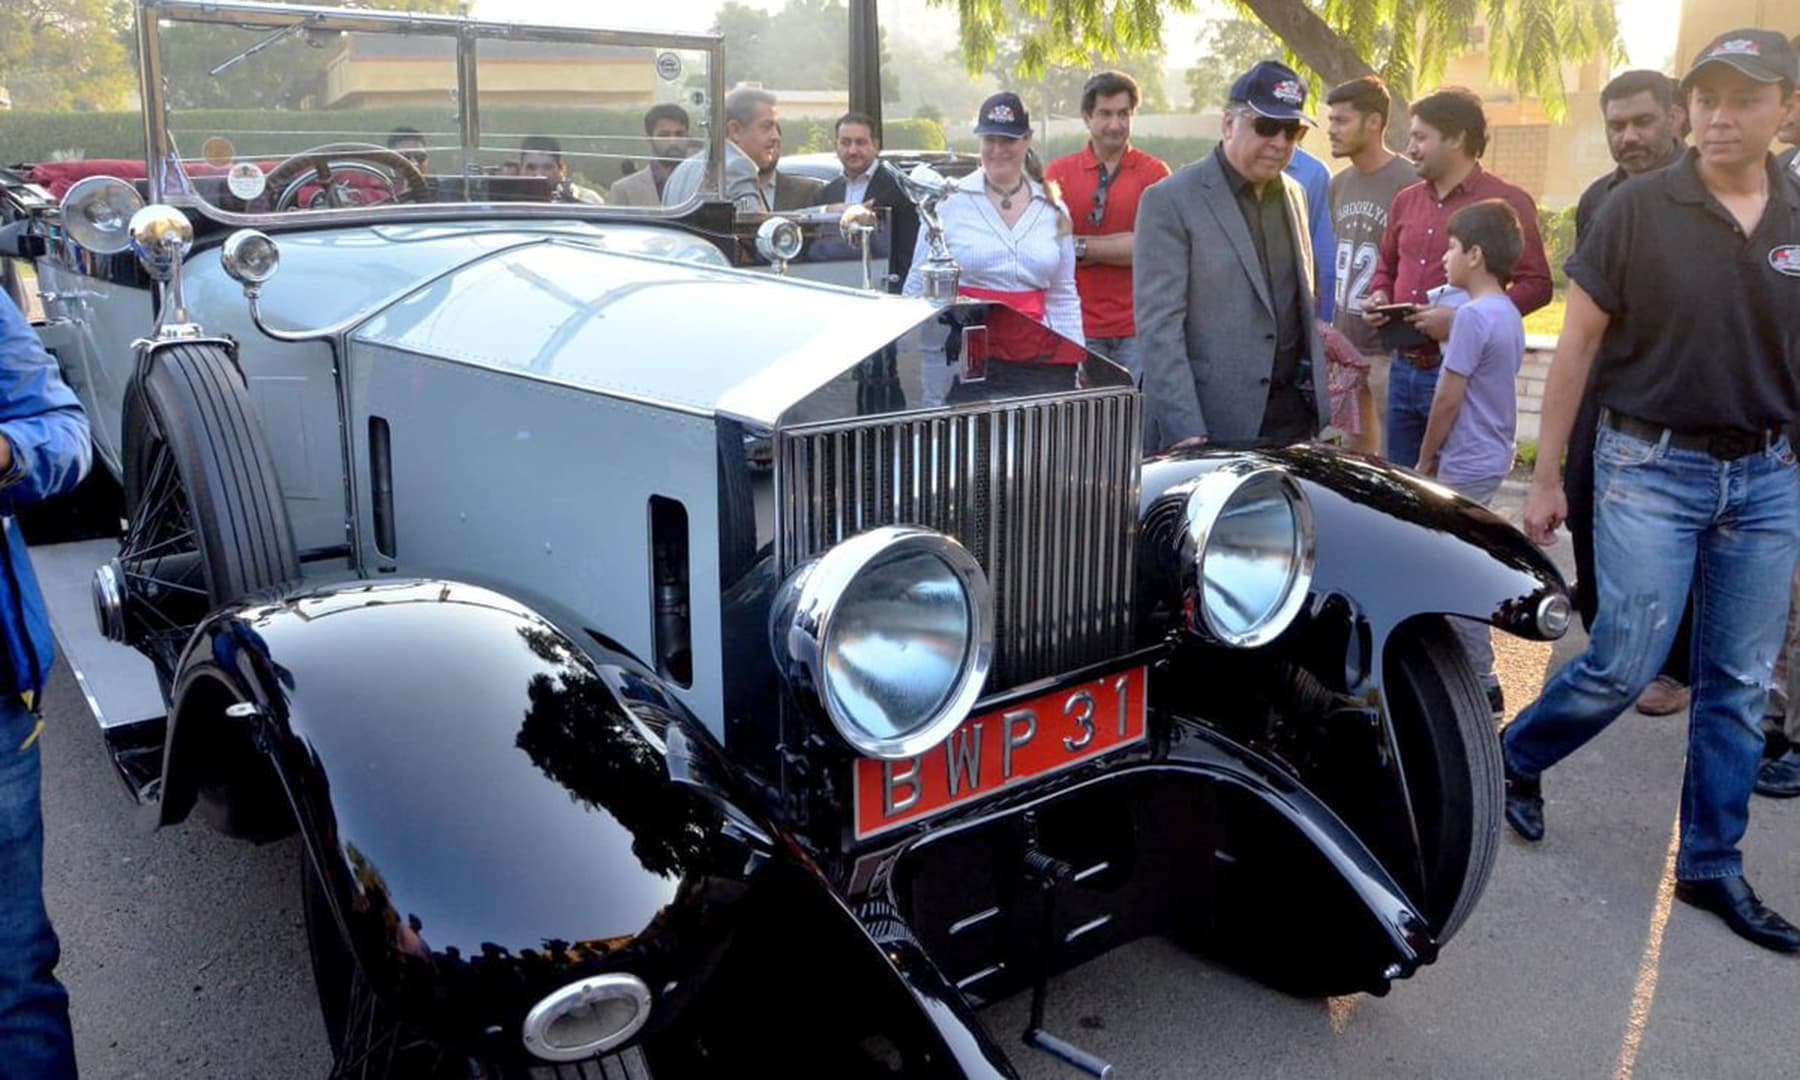 The glittering cars from the show held in Peshawar included the 1947 Rolls-Royce Silver Wraith and the 1924 Rolls-Royce Silver Ghost used on August 14, 1947 by Quaid-i-Azam. —@PTIofficial